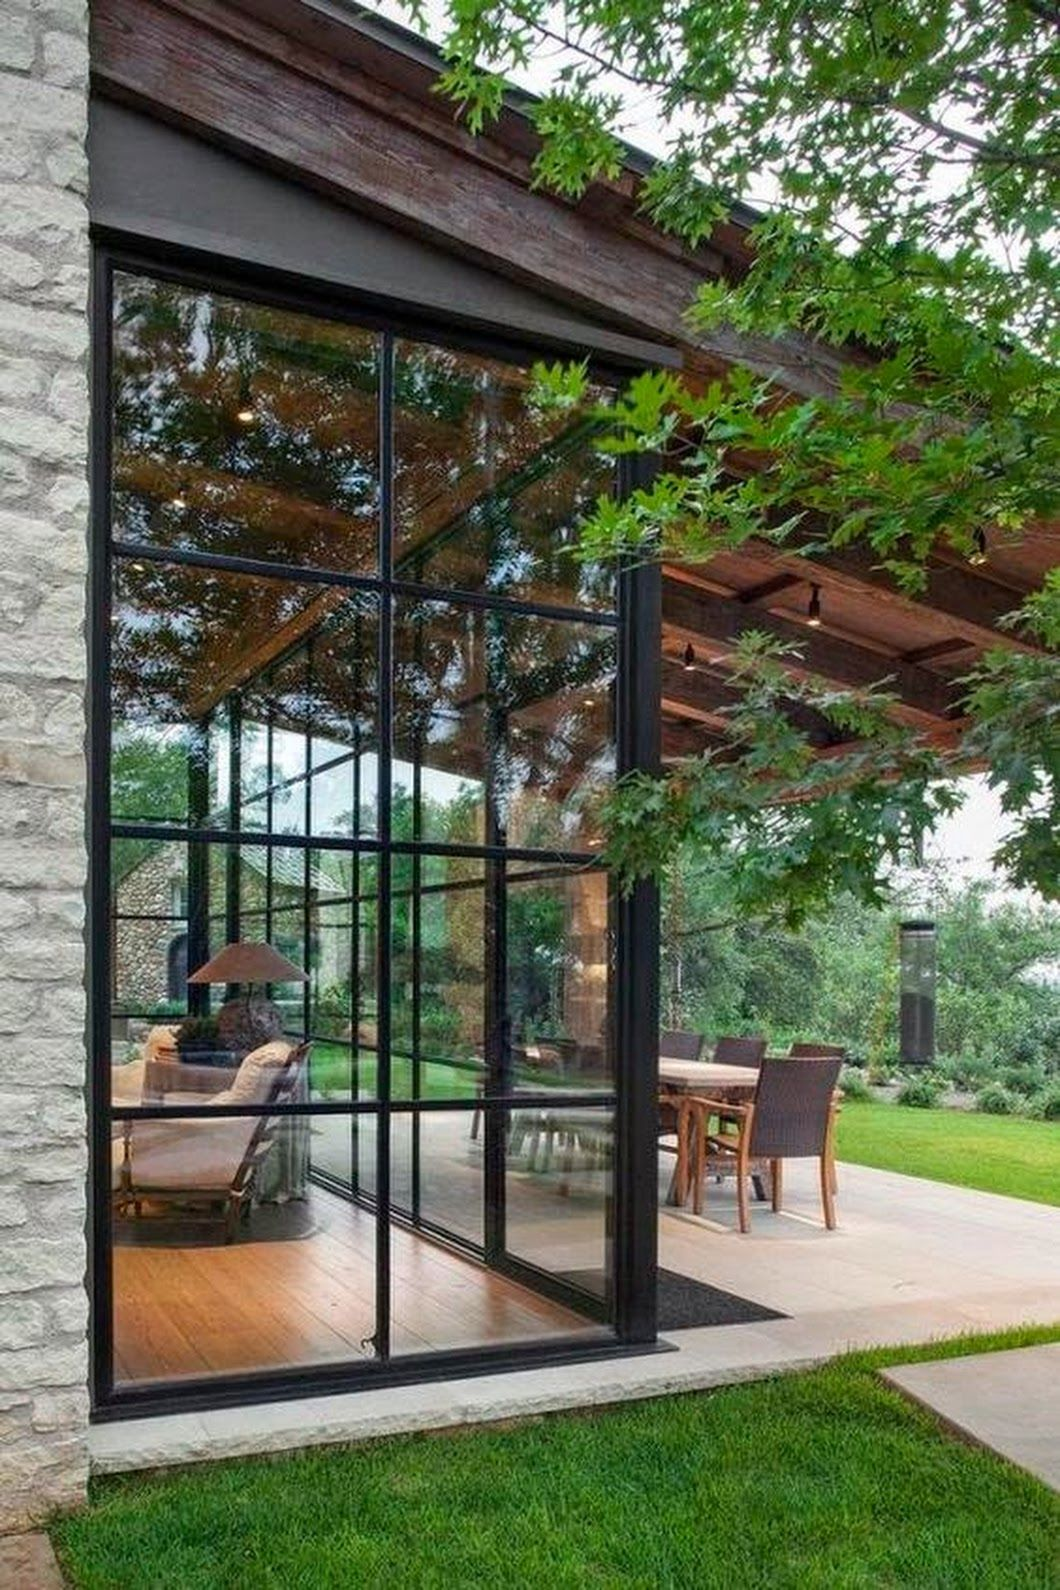 House Exterior Image By Linda Wik On House Exterior Design Architecture